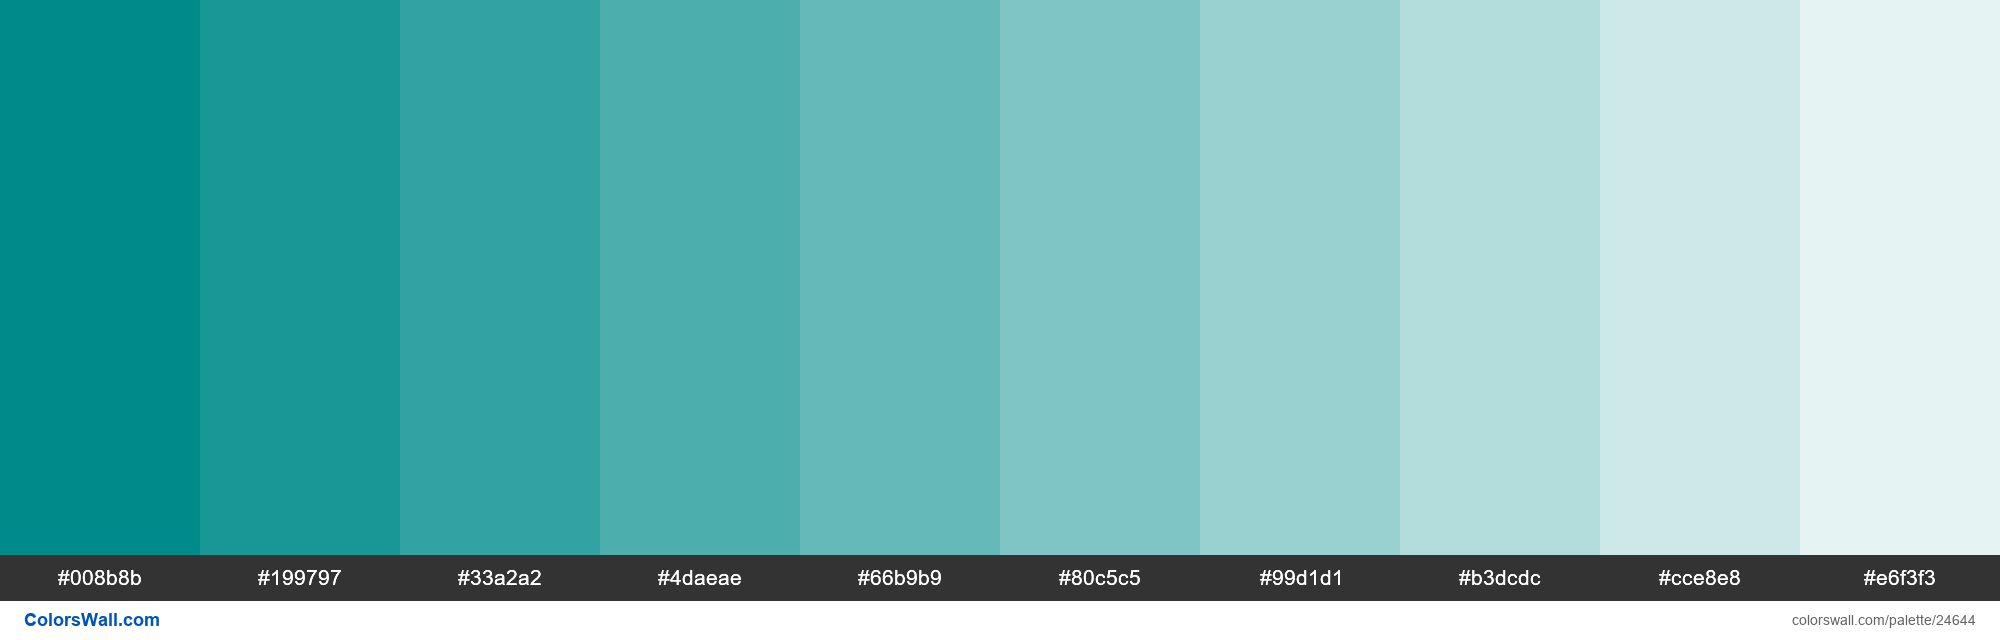 Tints Of Dark Cyan 008b8b Hex Color In 2020 Hex Colors Green Colour Palette Light Sea Green